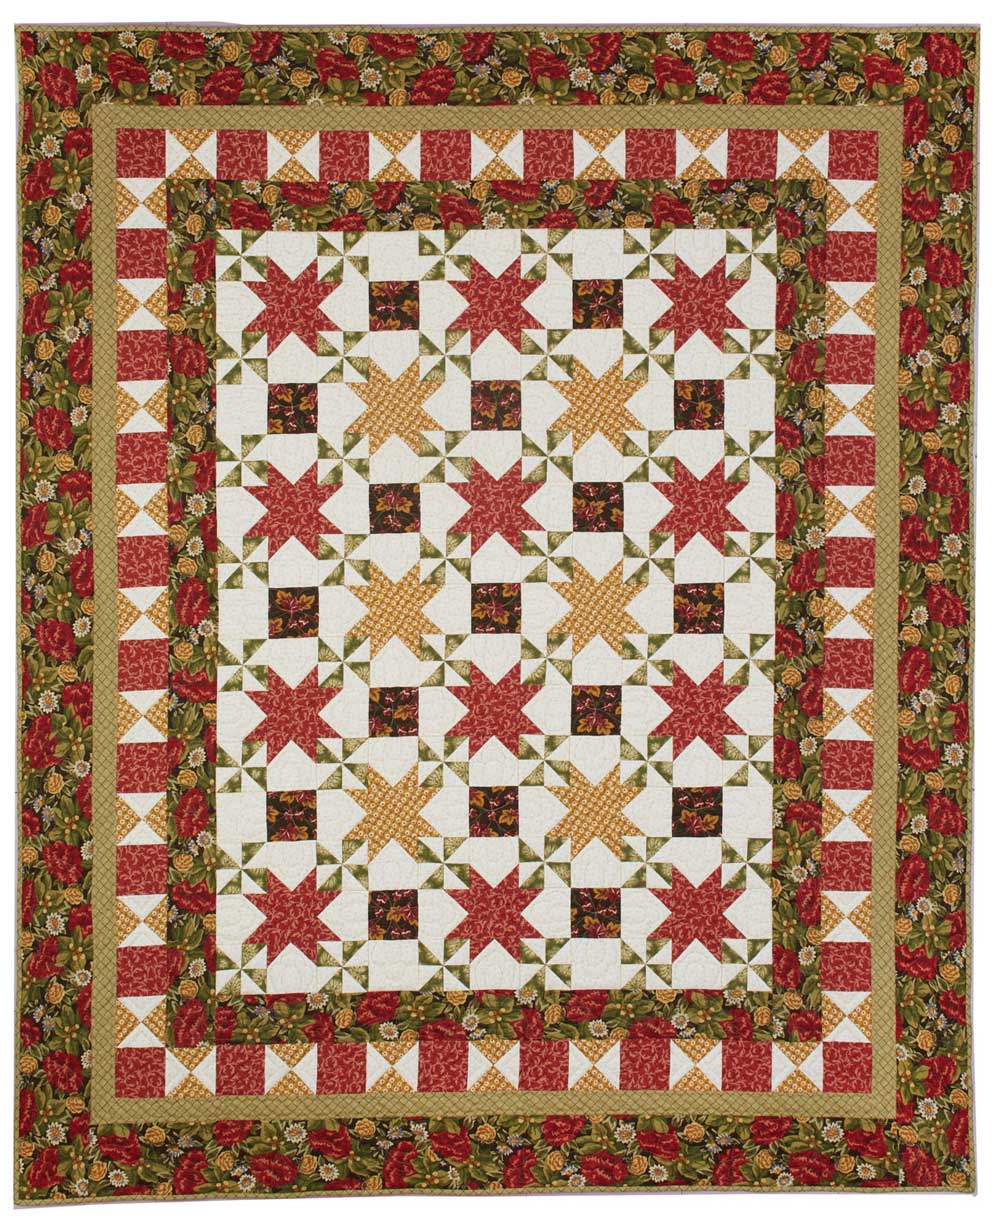 Throw Quilt Patterns